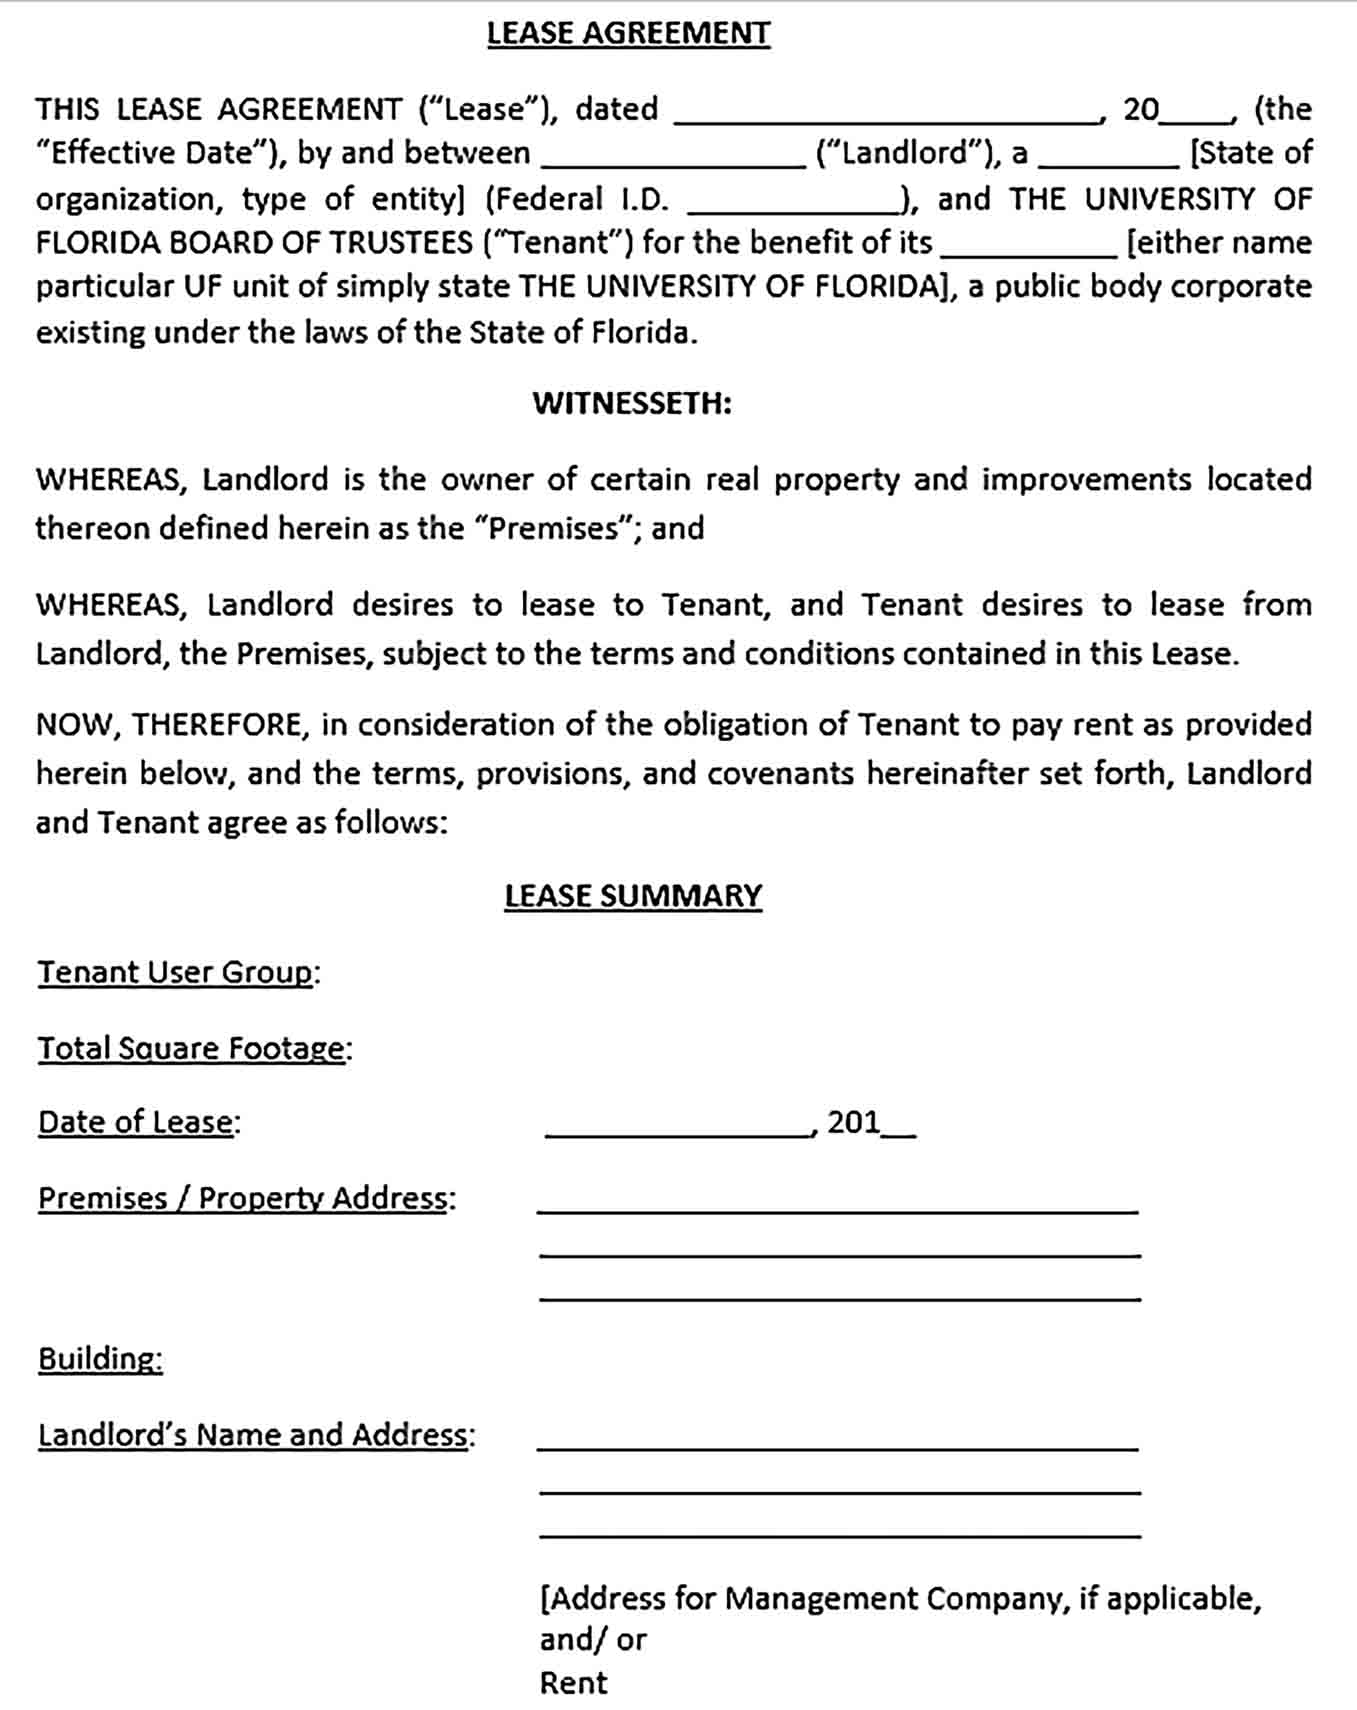 Sample Real Estate Lease Agreement